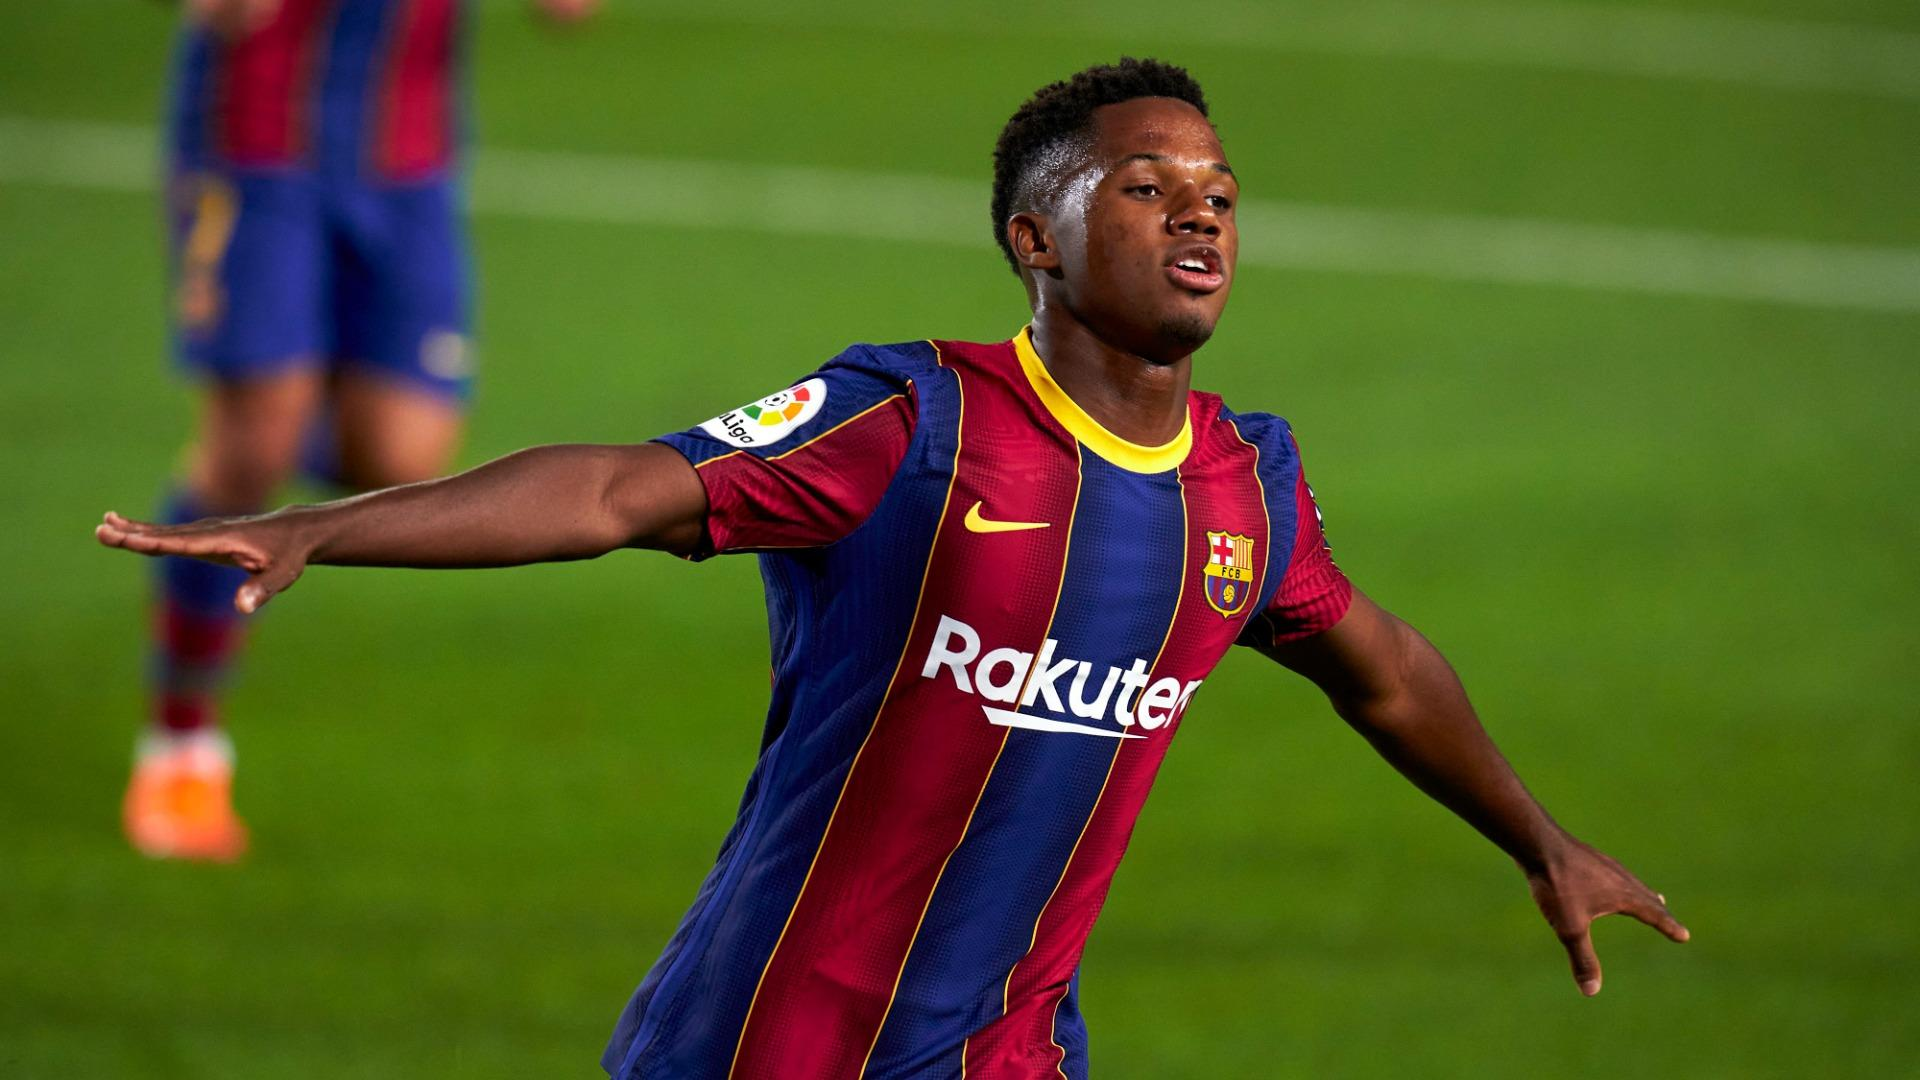 He Lacks A Bit Of Concentration Barca Boss Koeman Tempers Excitement Around Teenage Star Fati